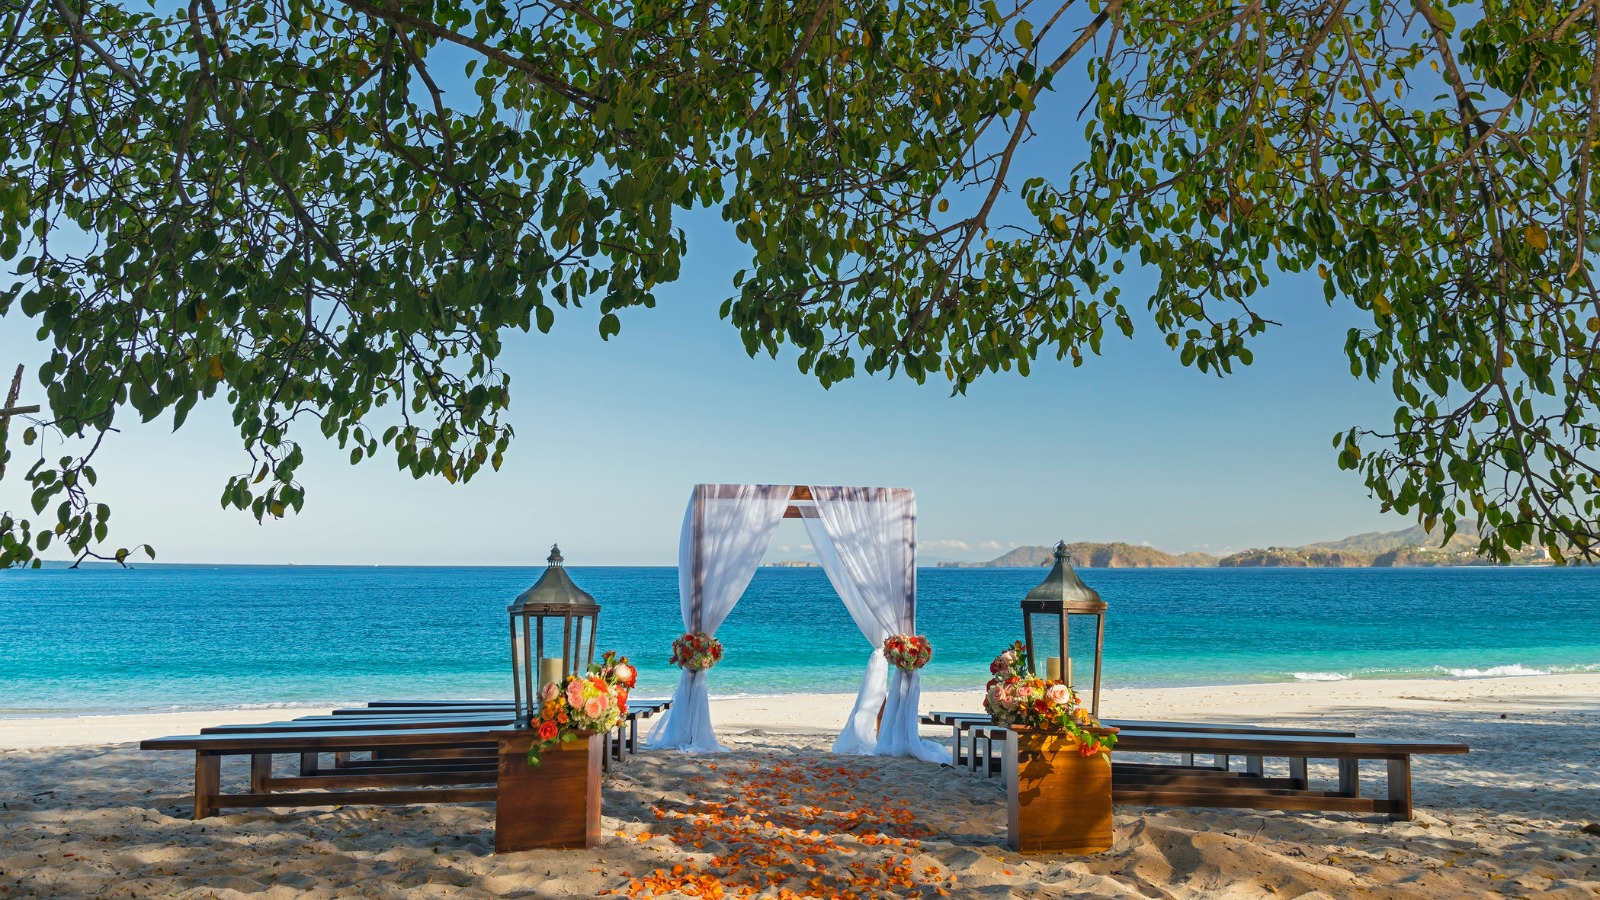 5f1daaa6ffd3f7c4e772 4b66d1c568cfc5d61880d77a99562544r88cf1rackcdn XLGallery Wes3560mf 186234 Beach Wedding Set Up